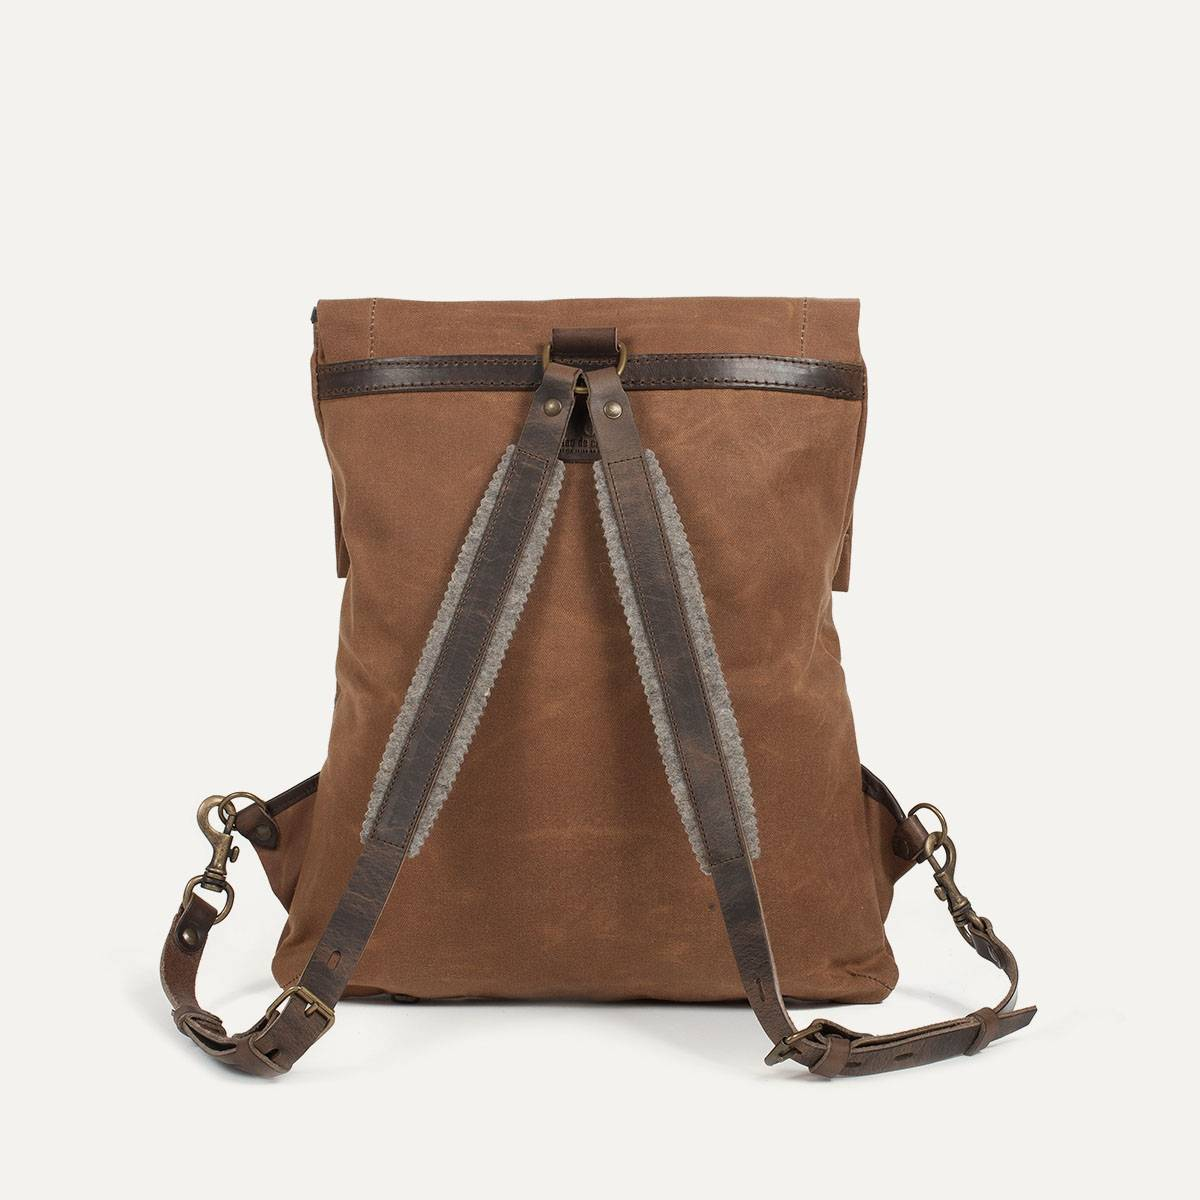 Coursier backpack WAXY - Camel/Brown (image n°5)